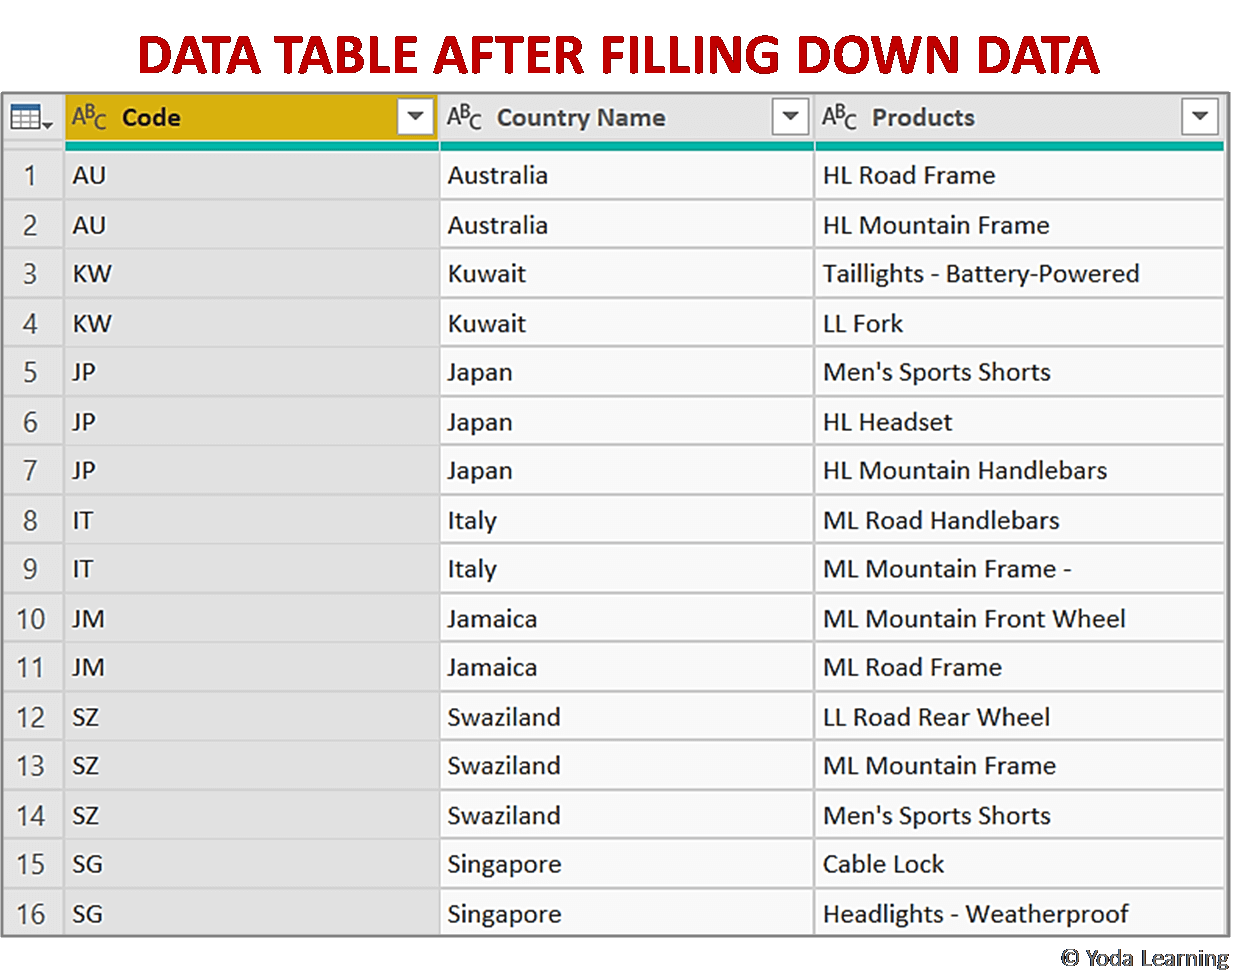 DATA TABLE AFTER FILLING DOWN DATA